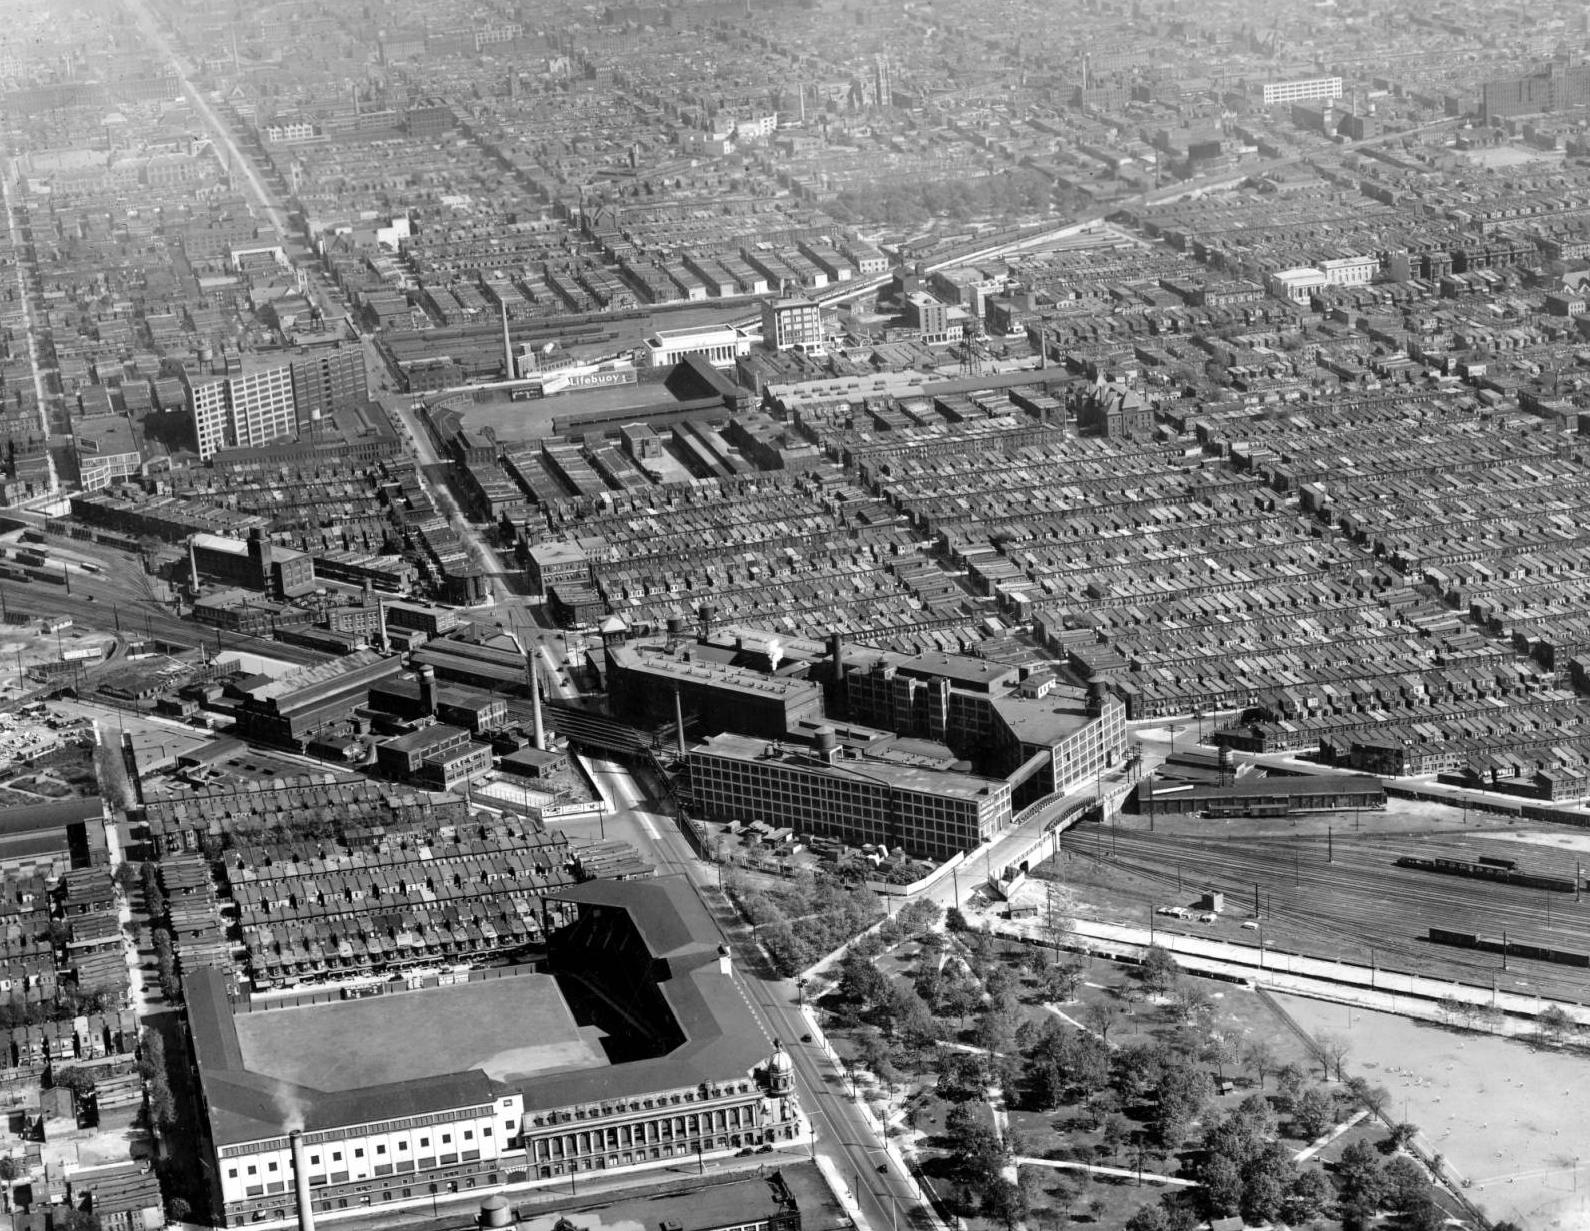 Aerial view of North Philadelphia, looking southeast over Shibe Park, the Baker Bowl, and the Connecting Railway | Temple University Libraries; Urban Archives